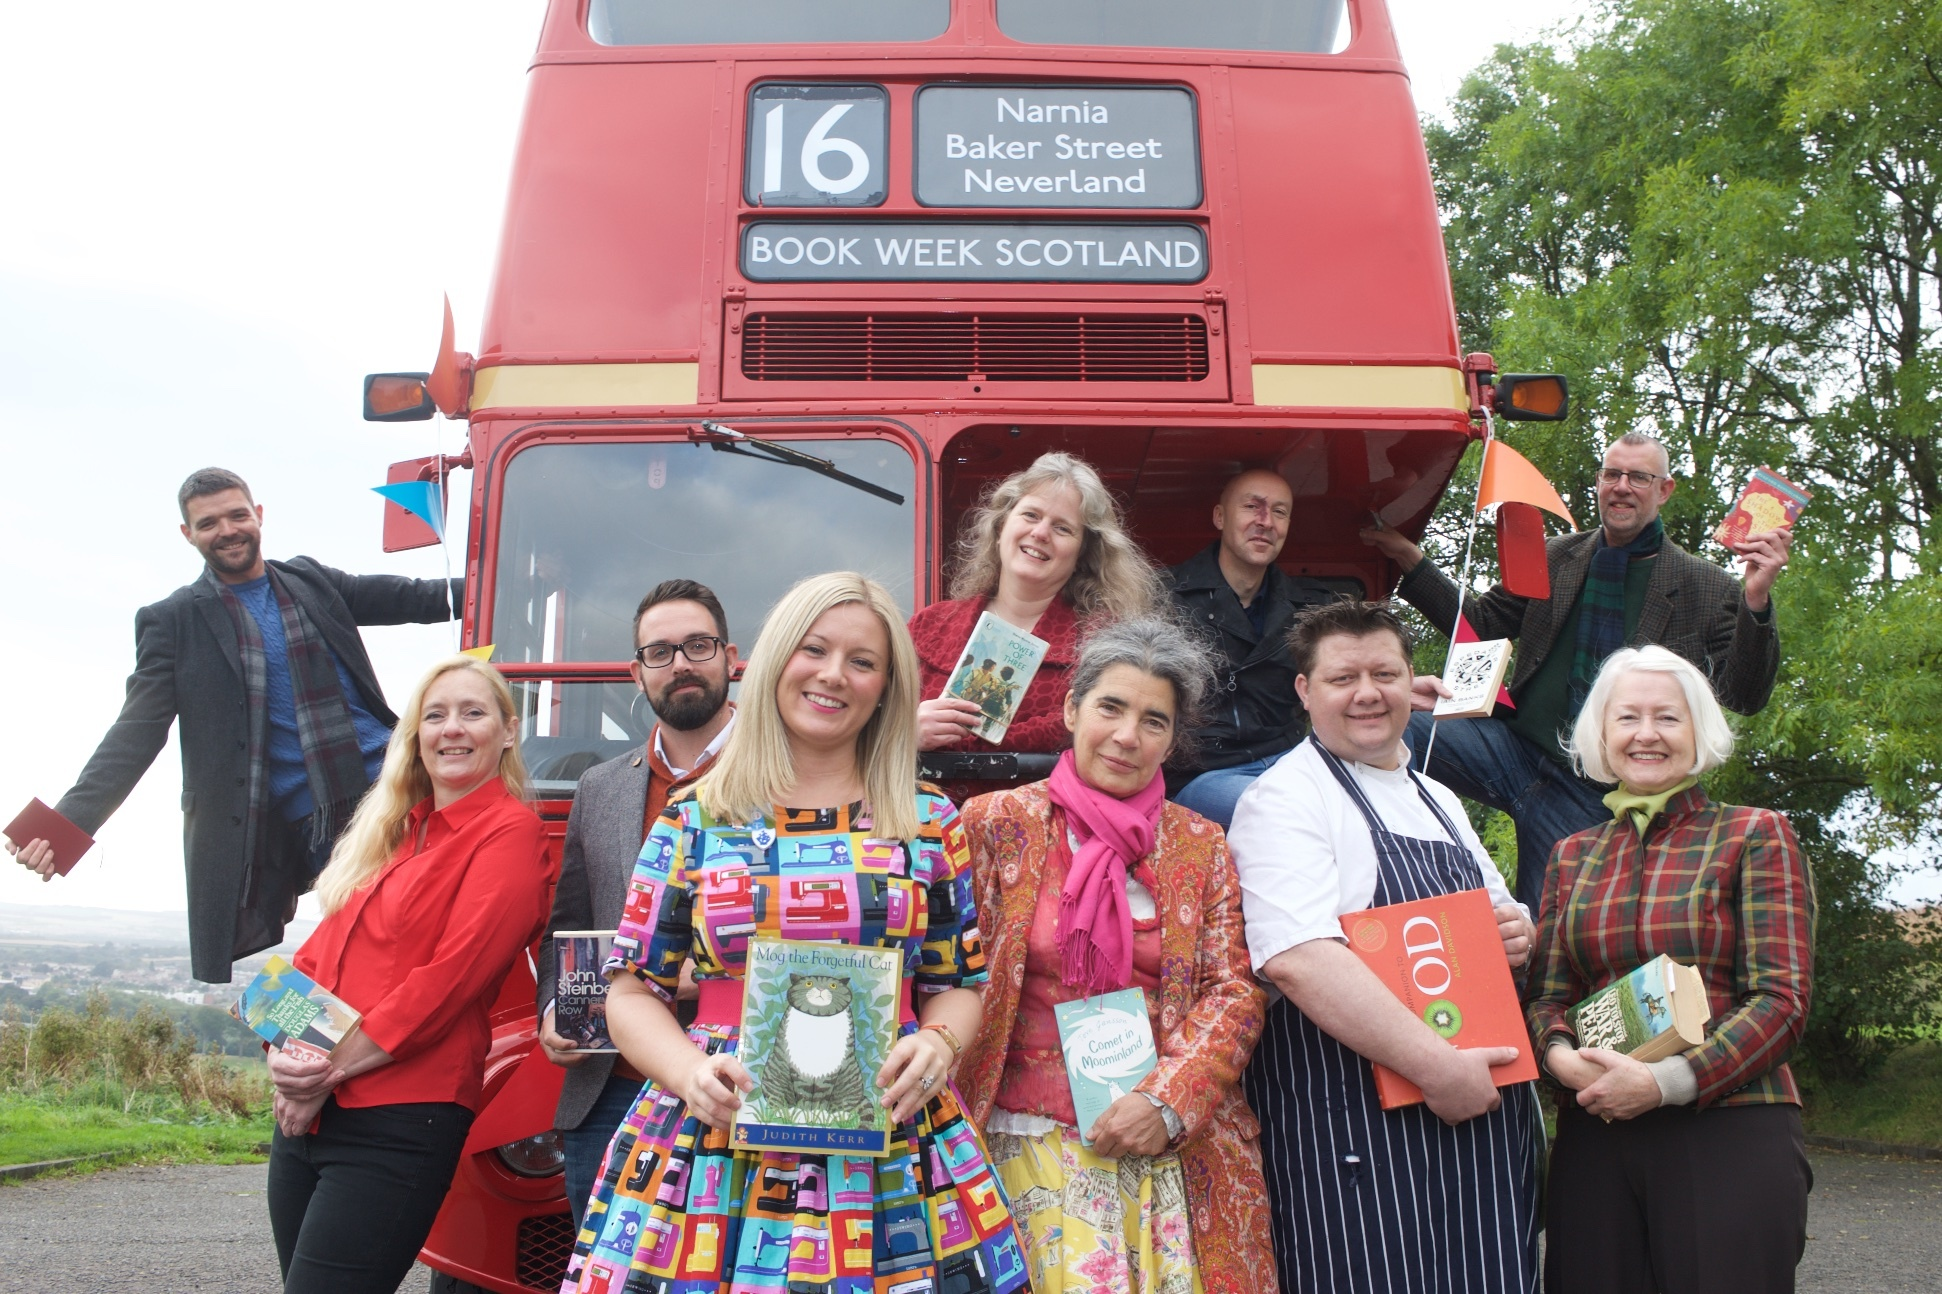 Authors urge Scots to discover where reading can take them at the Book Week Scotland 2016 programme launch.